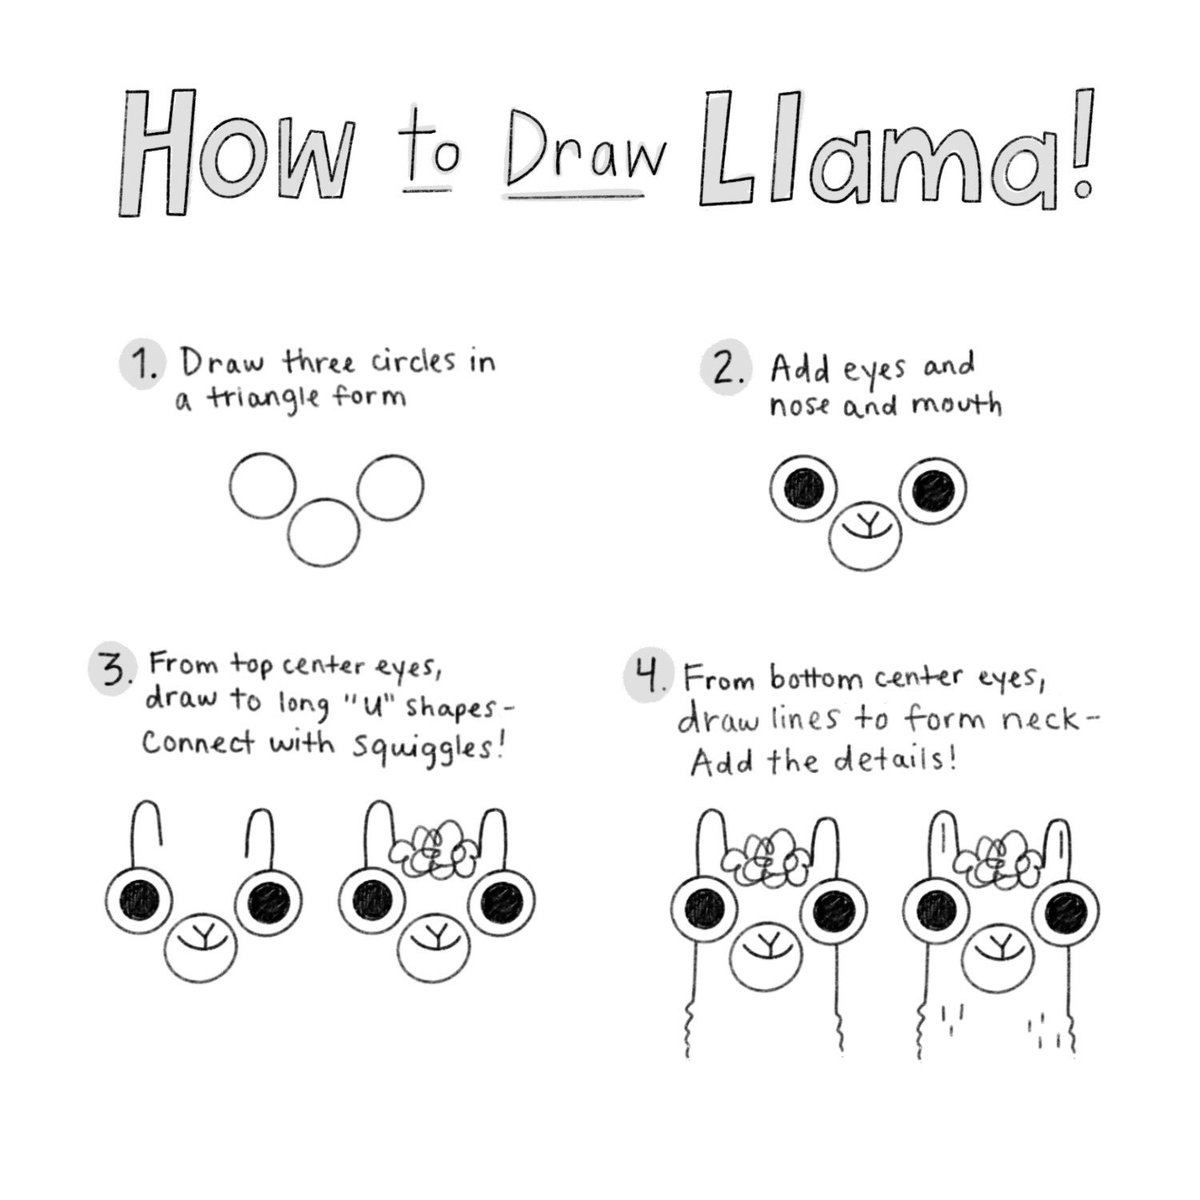 In college my professors told us NOT TO EVER DRAW THE EYES FIRST, but alas that's how I draw everything. Stay tuned for a full Llama tutorial next week!  (20 days)  #LlamaDestroysTheWorld #doodle #drawing #kidlitart #illustrator #newin19<br>http://pic.twitter.com/bCW9yin179